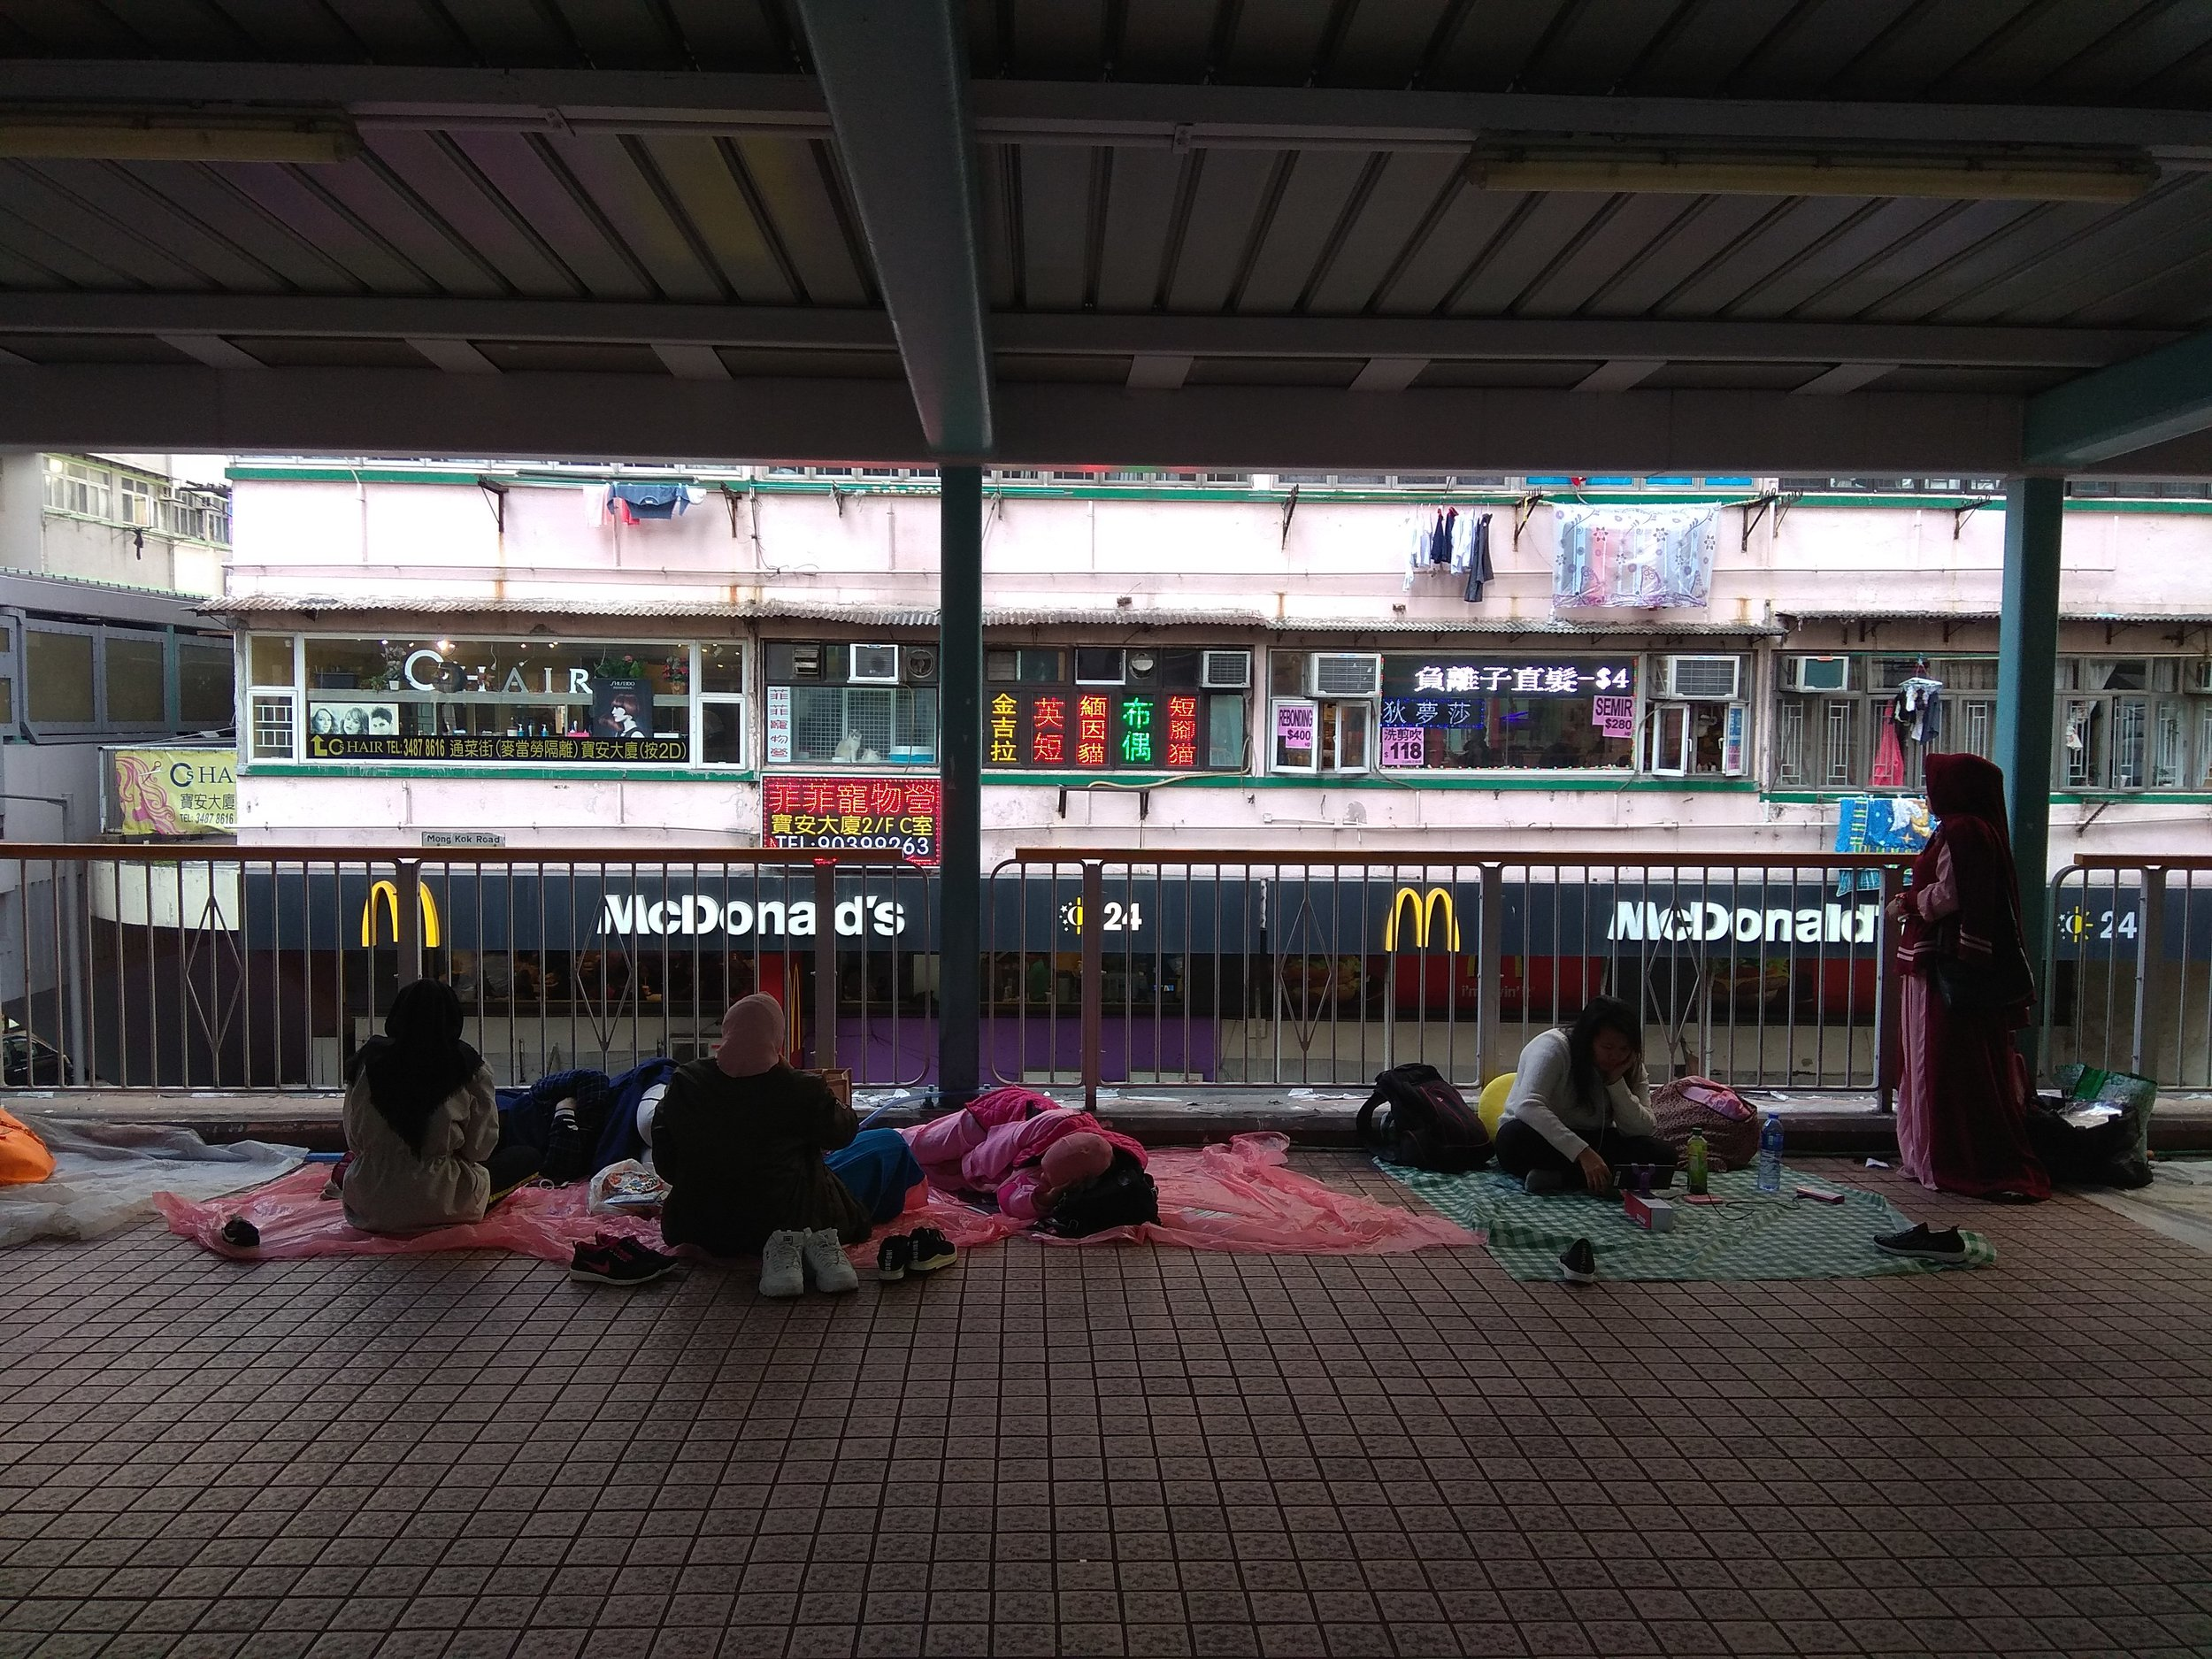 [Image description: photograph of people resting on blankets and tarpaulins in a public walkway. The foreground where they sit is dimly lit, and the background of shops and restaurants is bathed in brighter light.]  Photo credit to the author